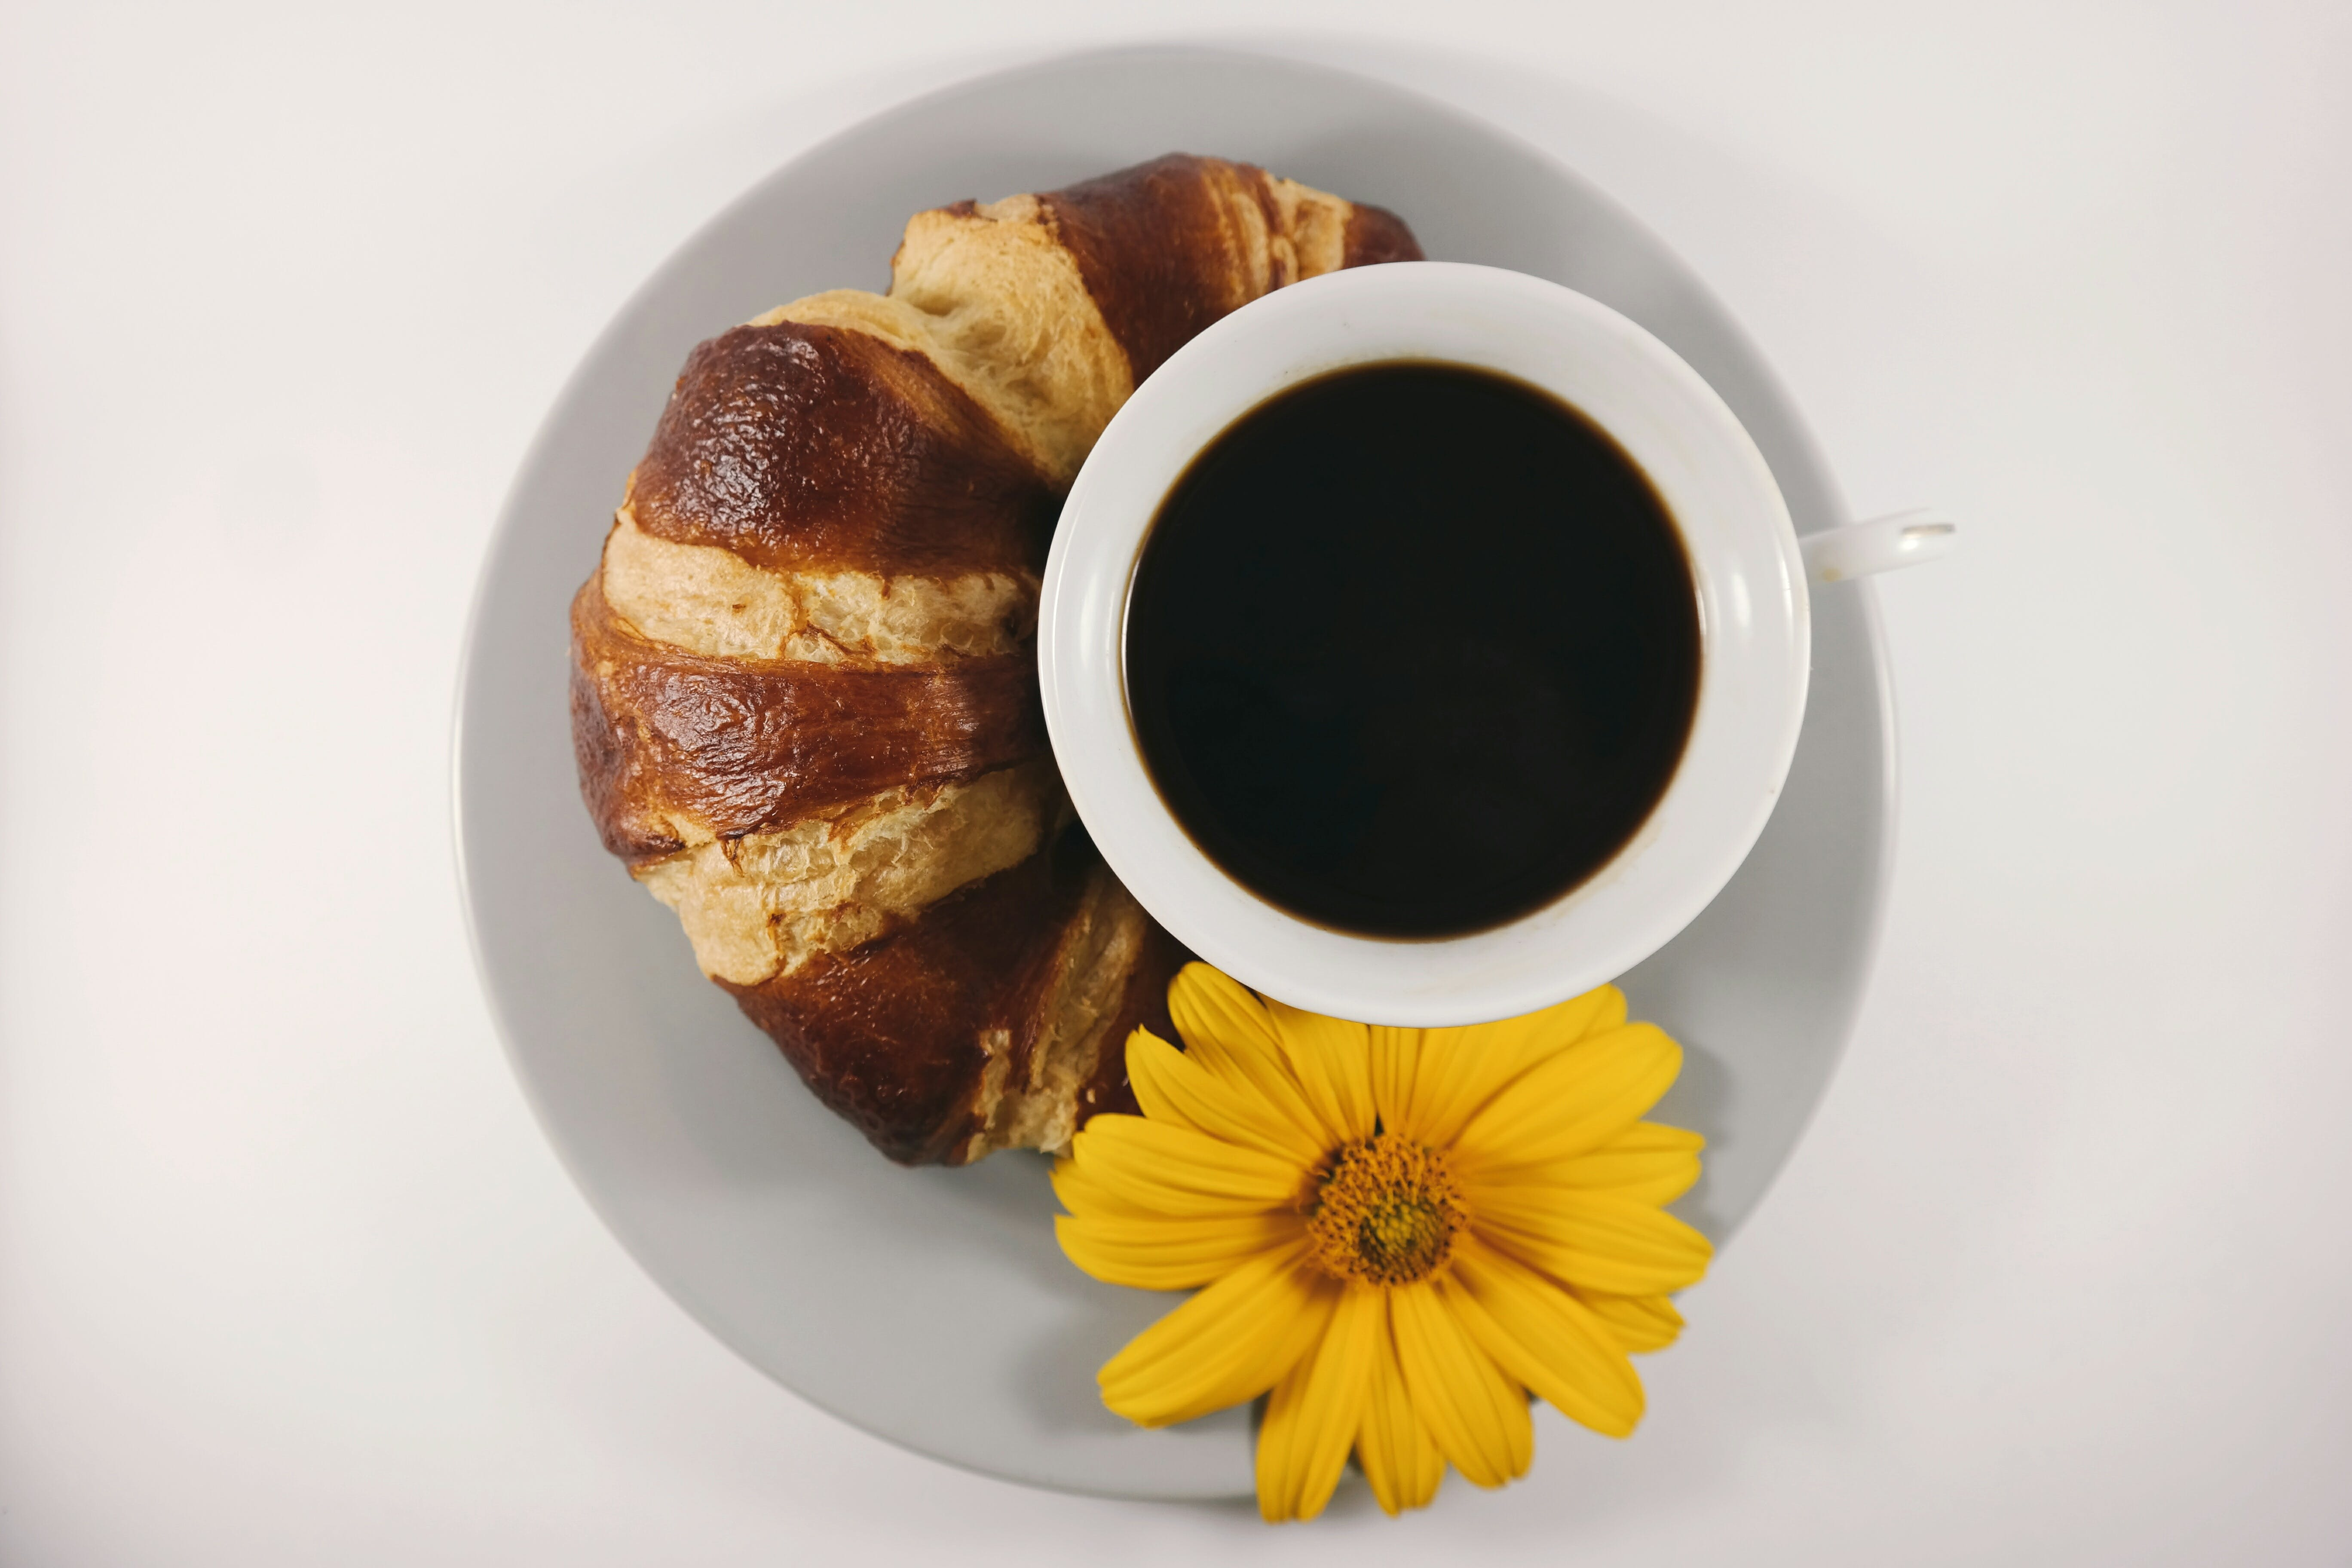 Cup of Coffee Beside Bread on Plate